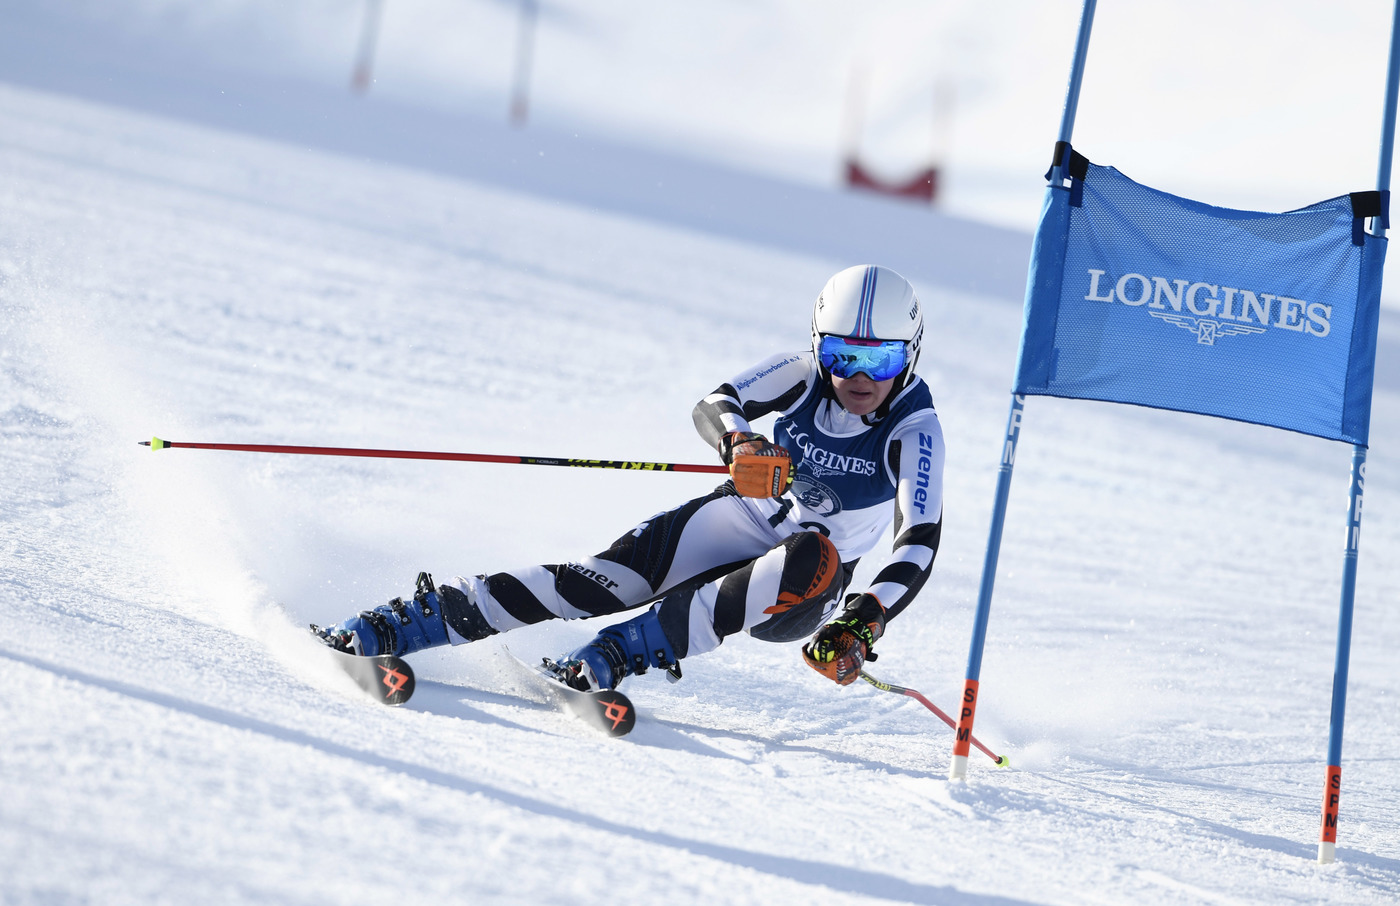 Longines Alpine Skiing Event: LONGINES FUTURE SKI CHAMPIONS - THE BEST YOUNG FEMALE SKIERS 5